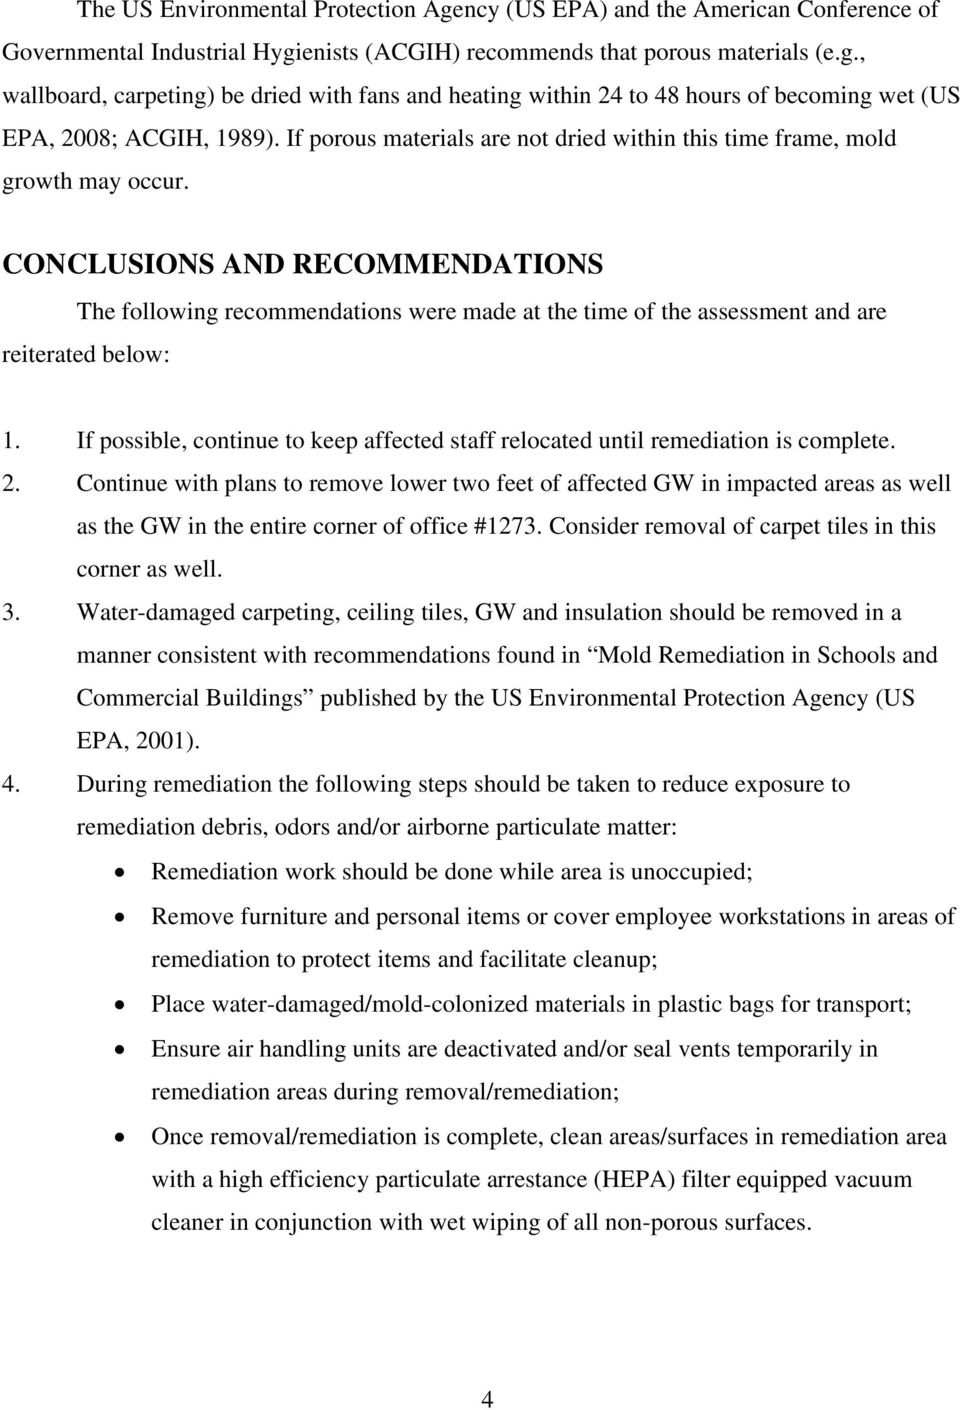 CONCLUSIONS AND RECOMMENDATIONS The following recommendations were made at the time of the assessment and are reiterated below: 1.